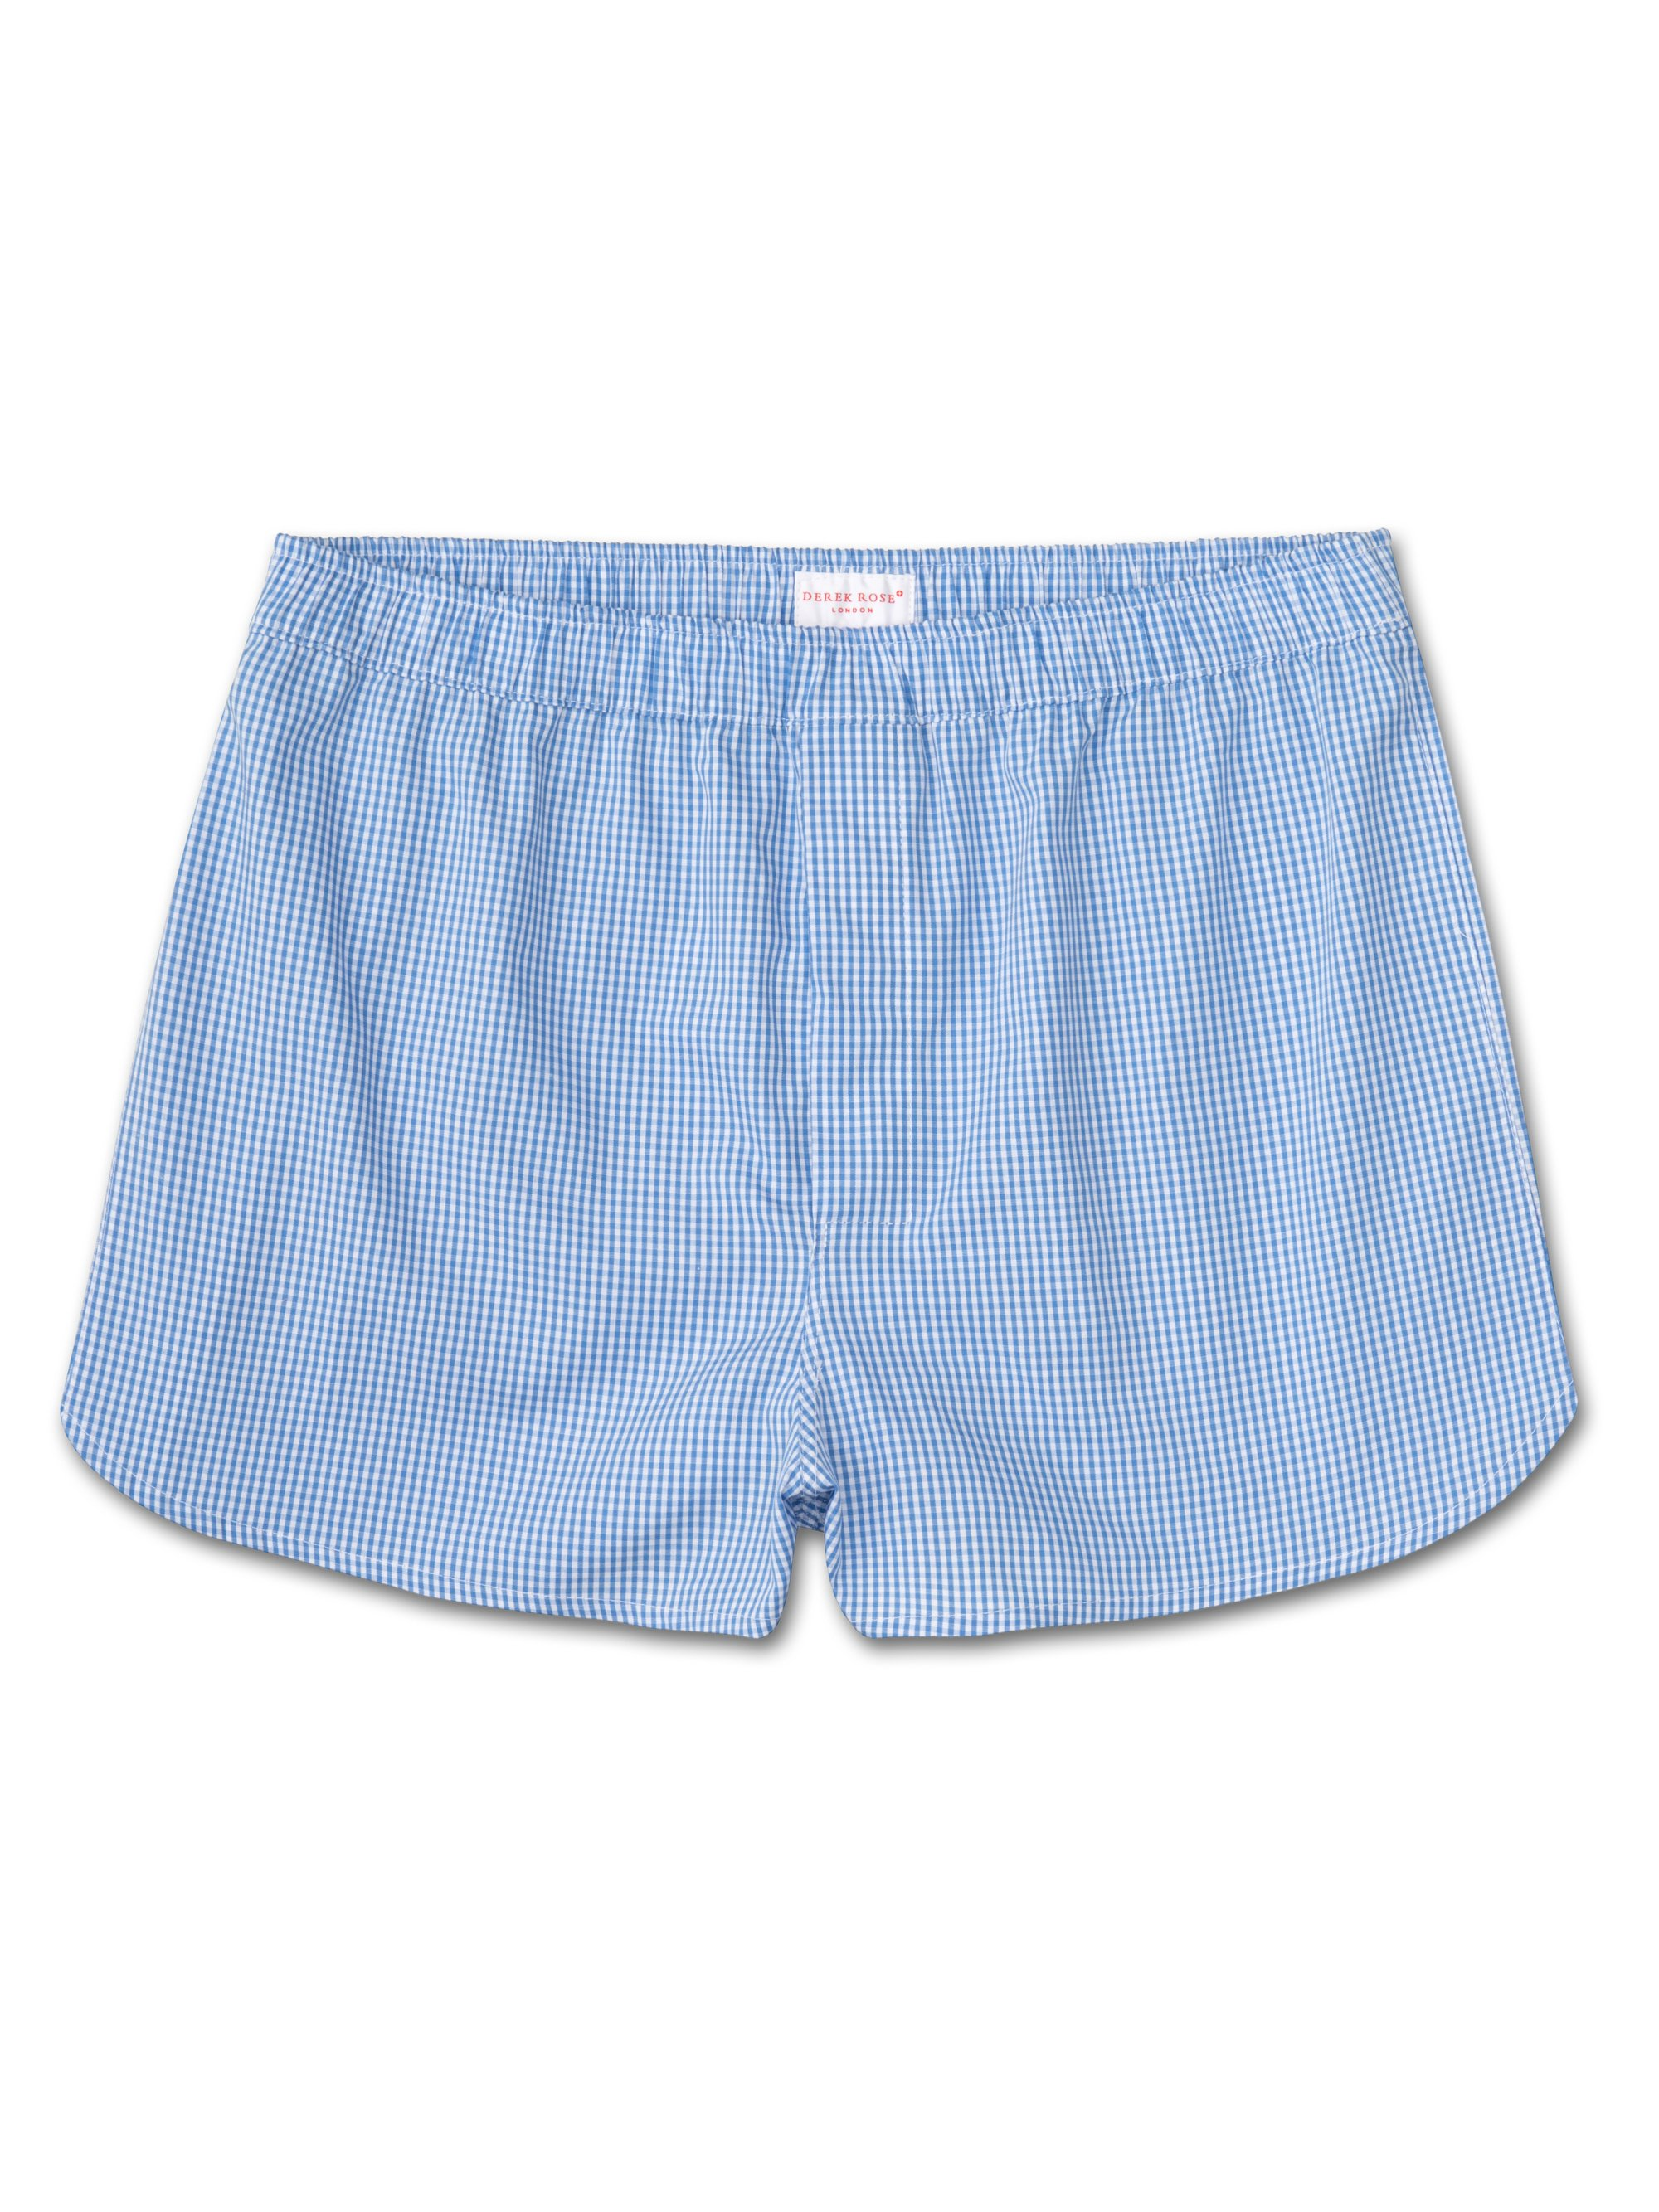 Men's Modern Fit Boxer Shorts Gingham Pure Cotton Check Blue